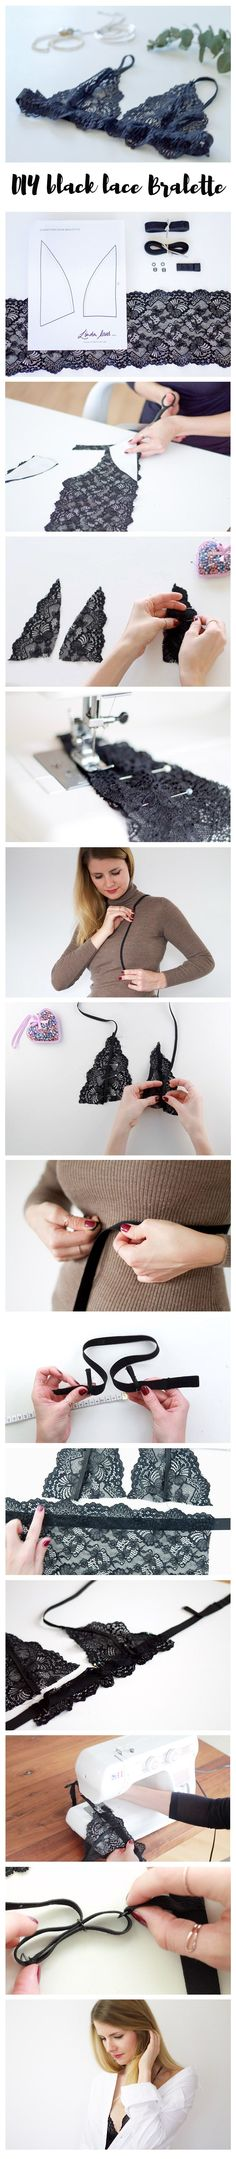 Black lace Bralette DIY – A fun and easy do it yourself project for the summer …. Black lace Bralette DIY – A fun and easy do it yourself project for the summer … you can buy a complete DIY Material Kit via lindaloves. Lingerie Couture, Sewing Lingerie, Diy Couture, Lingerie Patterns, Sewing Hacks, Sewing Tutorials, Sewing Crafts, Sewing Projects, Sewing Patterns